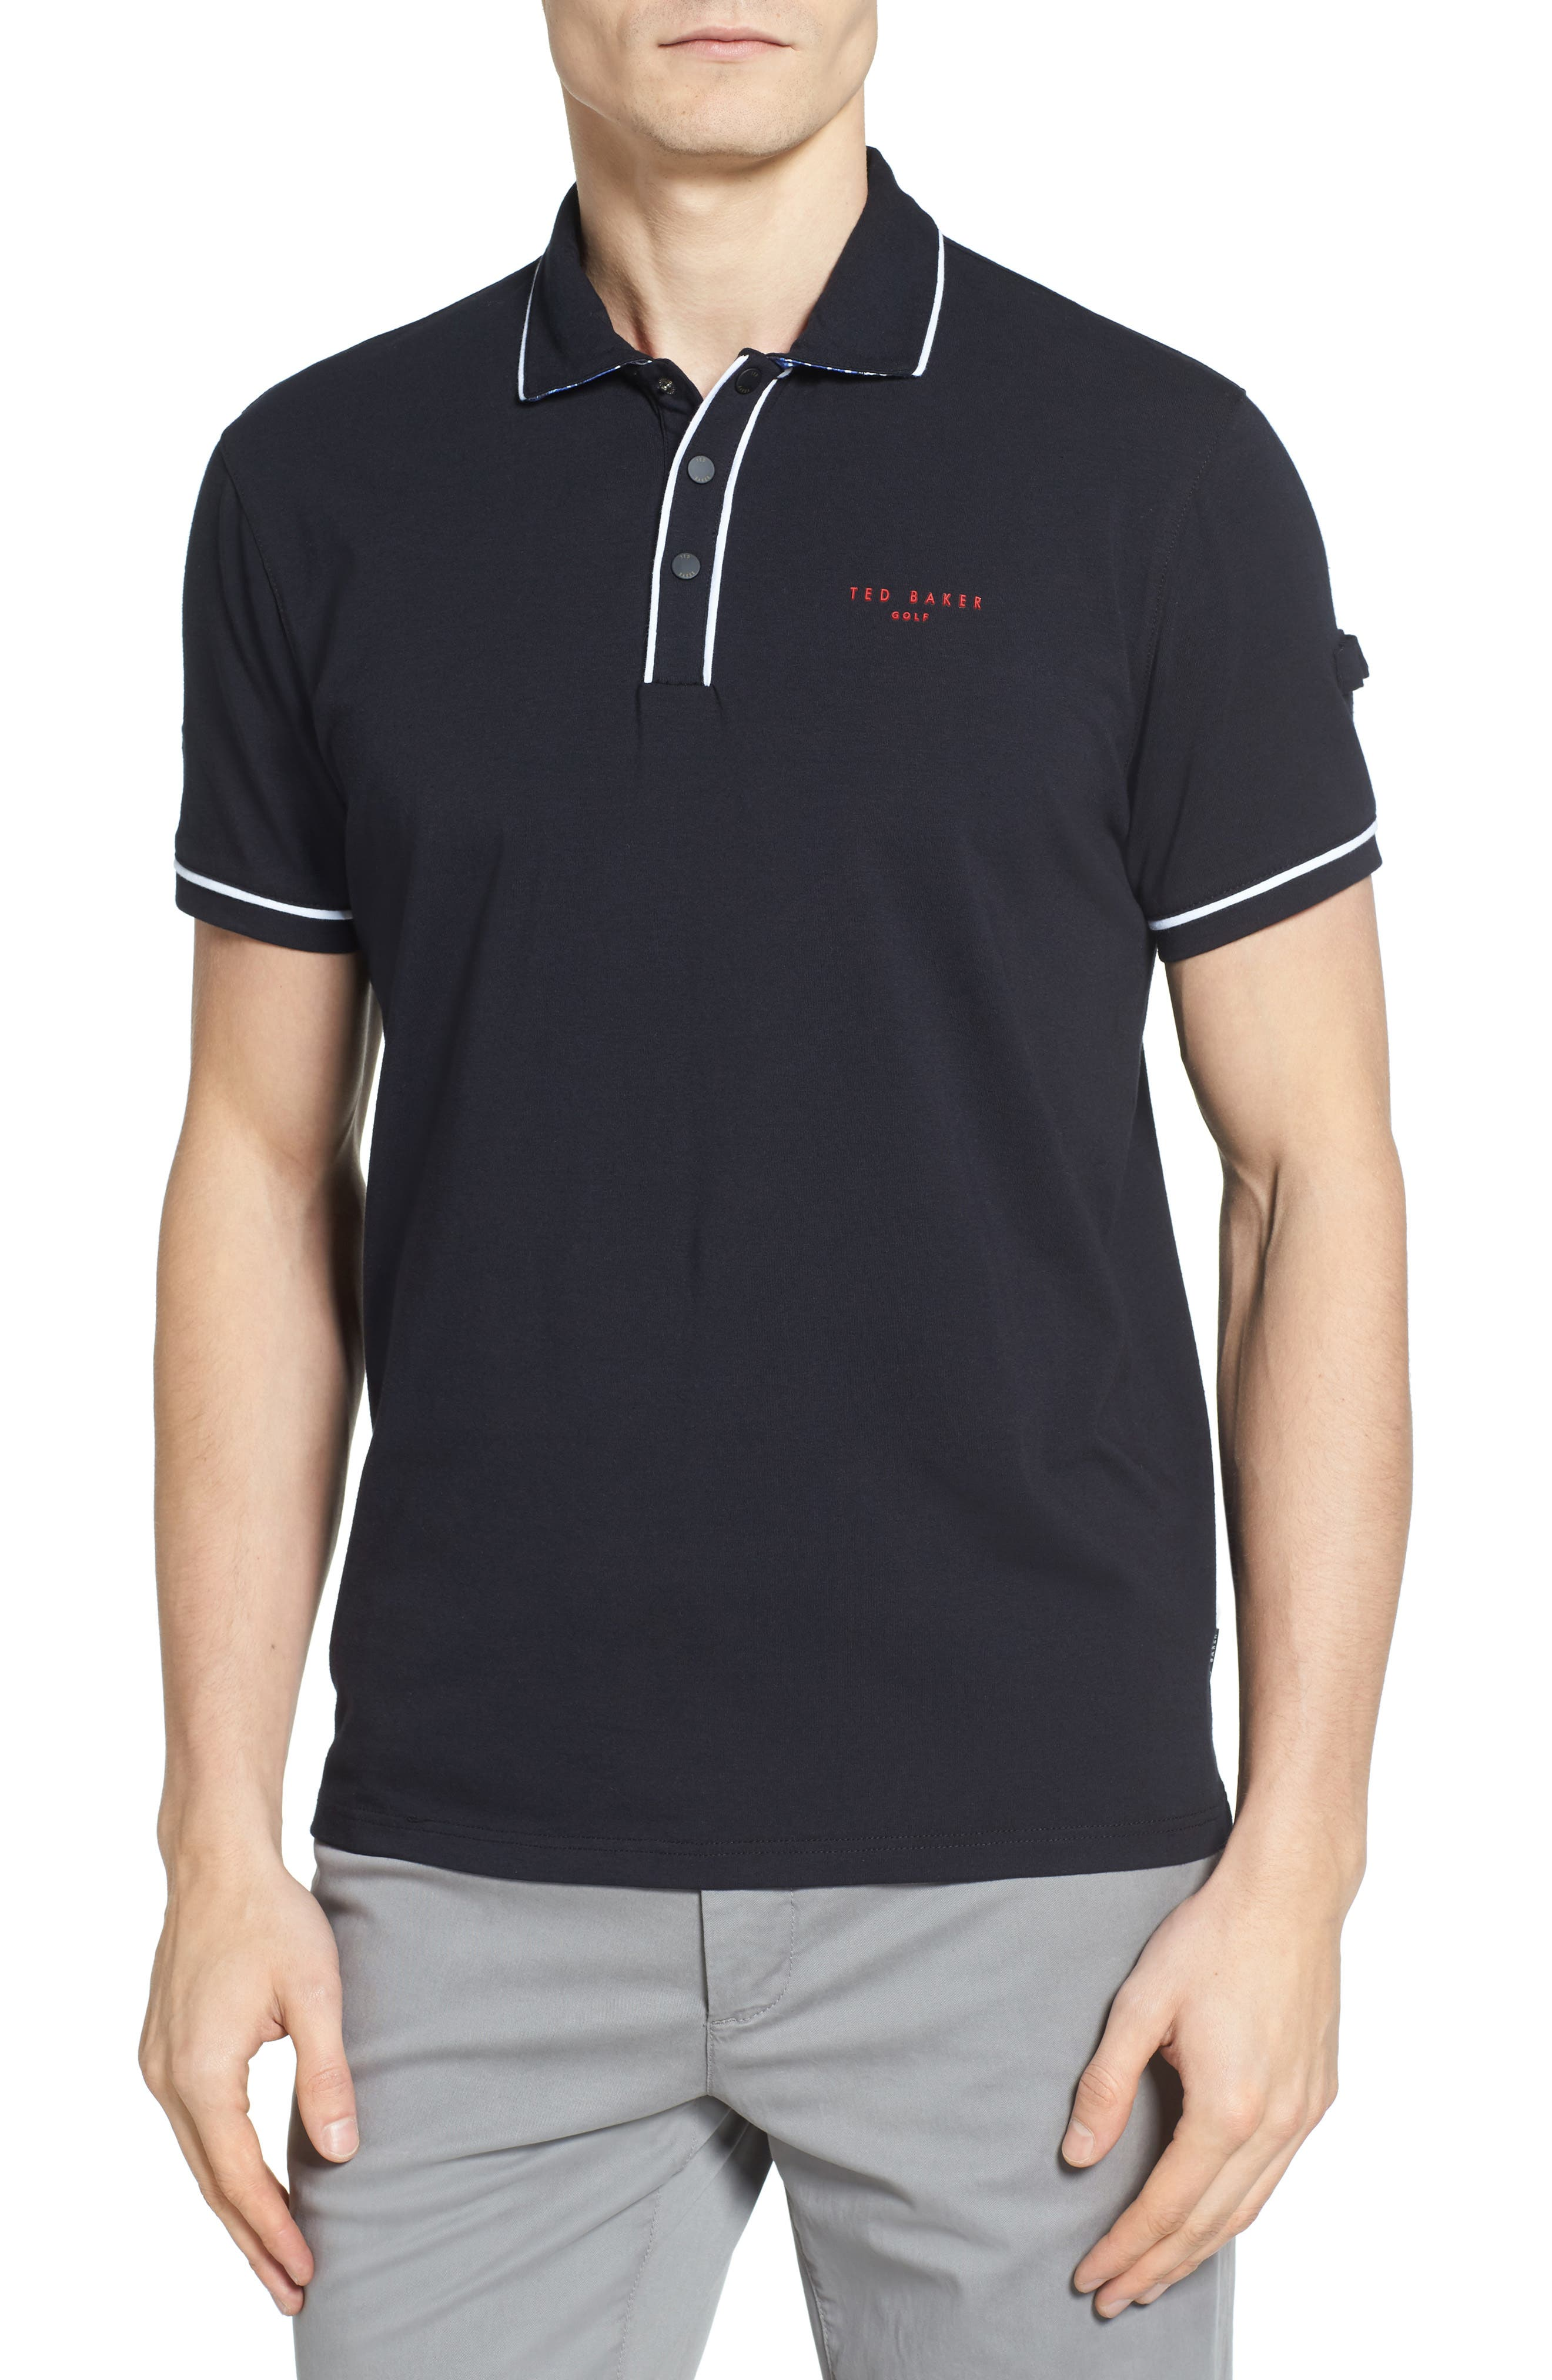 Playgo Piped Trim Golf Polo,                             Main thumbnail 1, color,                             001